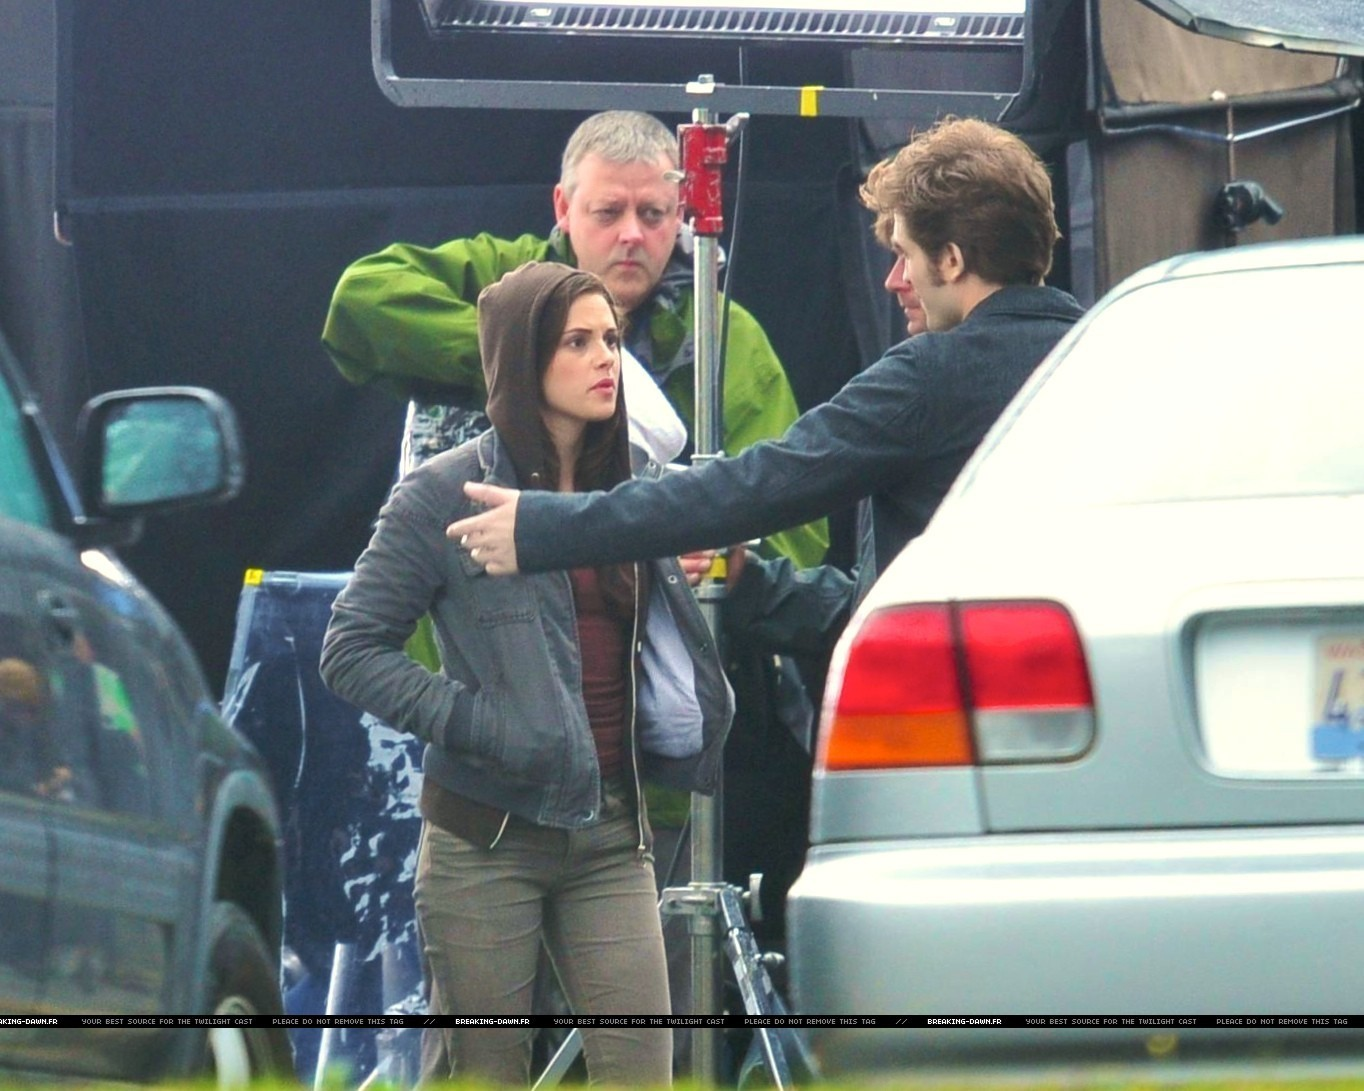 http://images2.fanpop.com/images/photos/8000000/Rob-kristen-on-the-set-of-Eclipse-yesterday-twilight-series-8080083-1364-1091.jpg